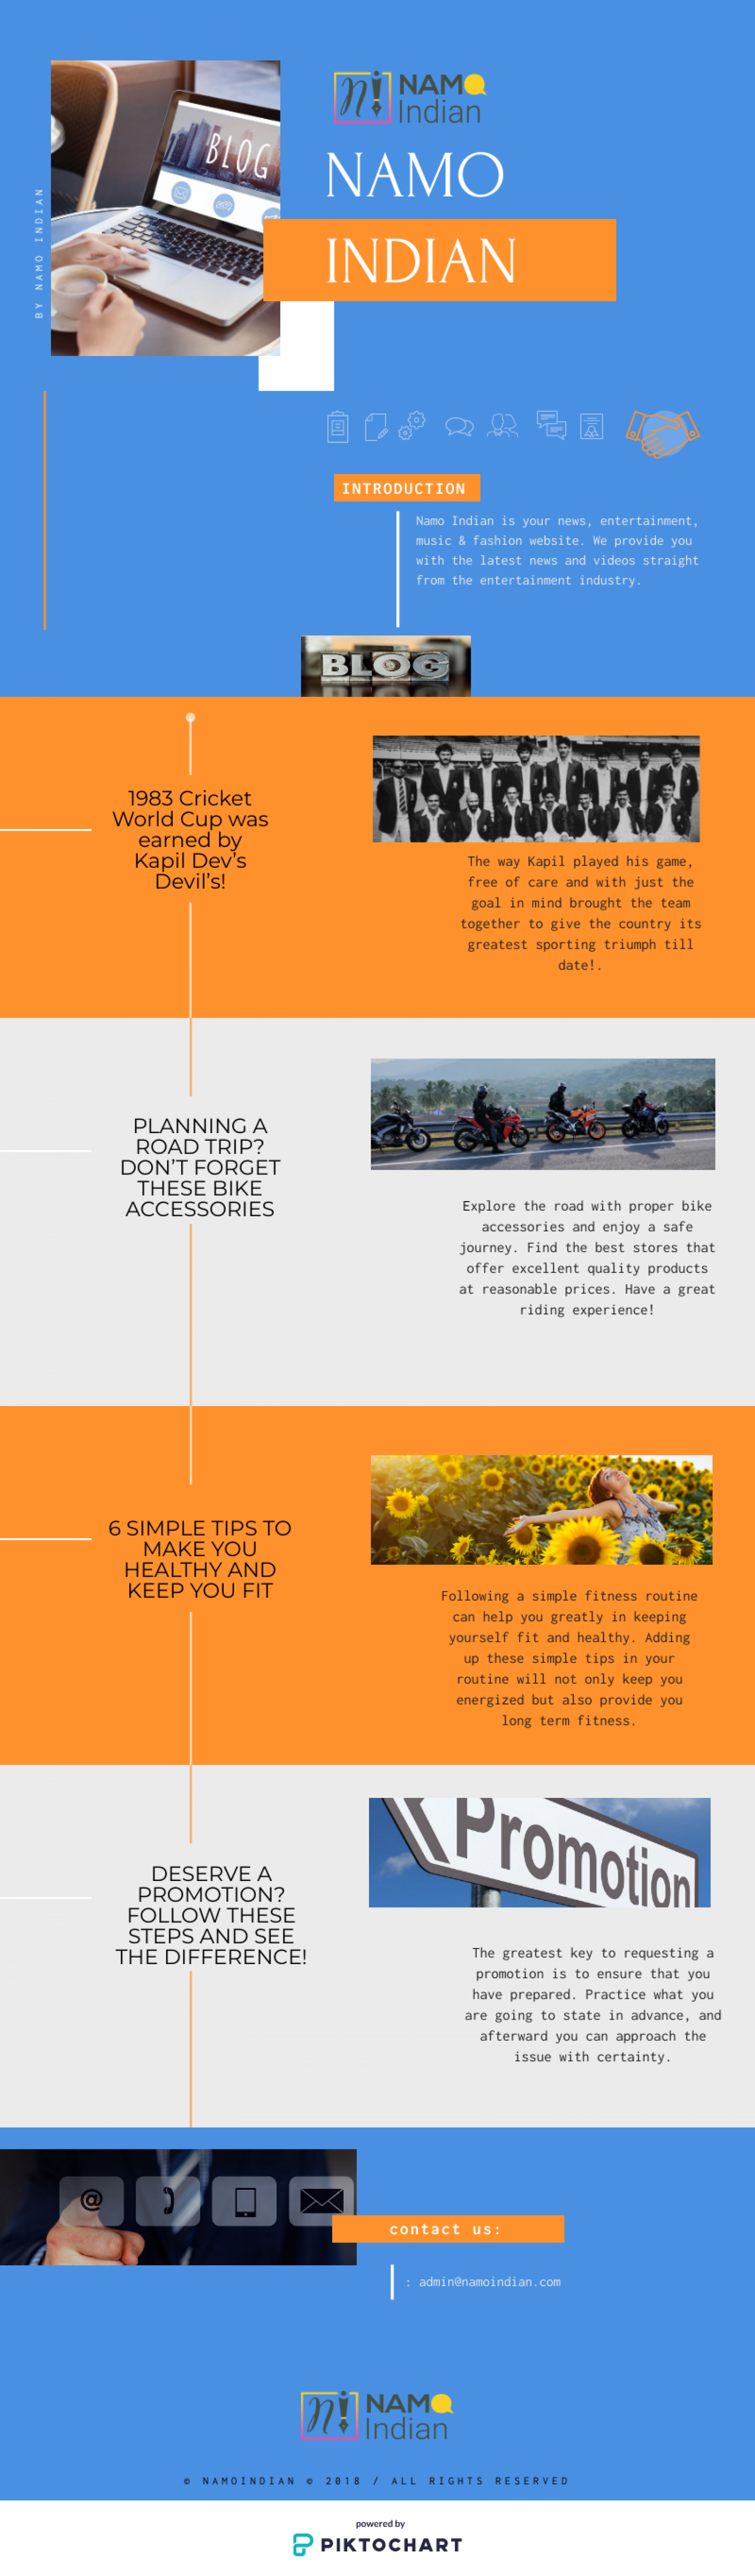 Blogs by Namo Indian Infographic